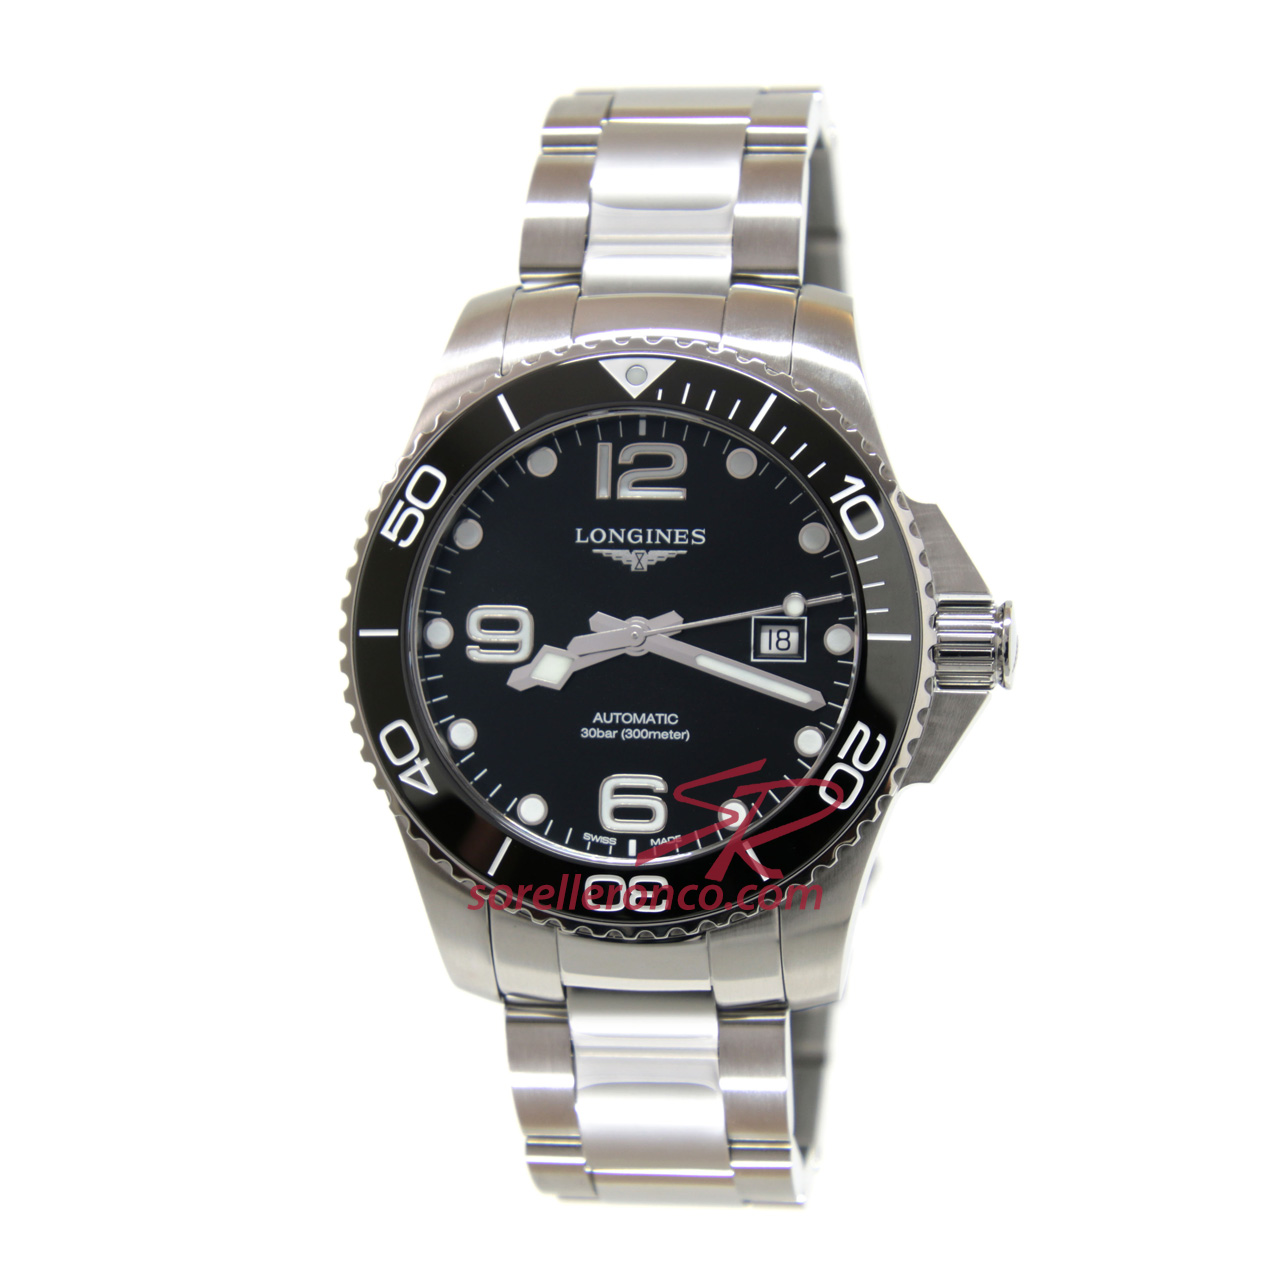 Hydroconquest 43mm Quadrante Nero